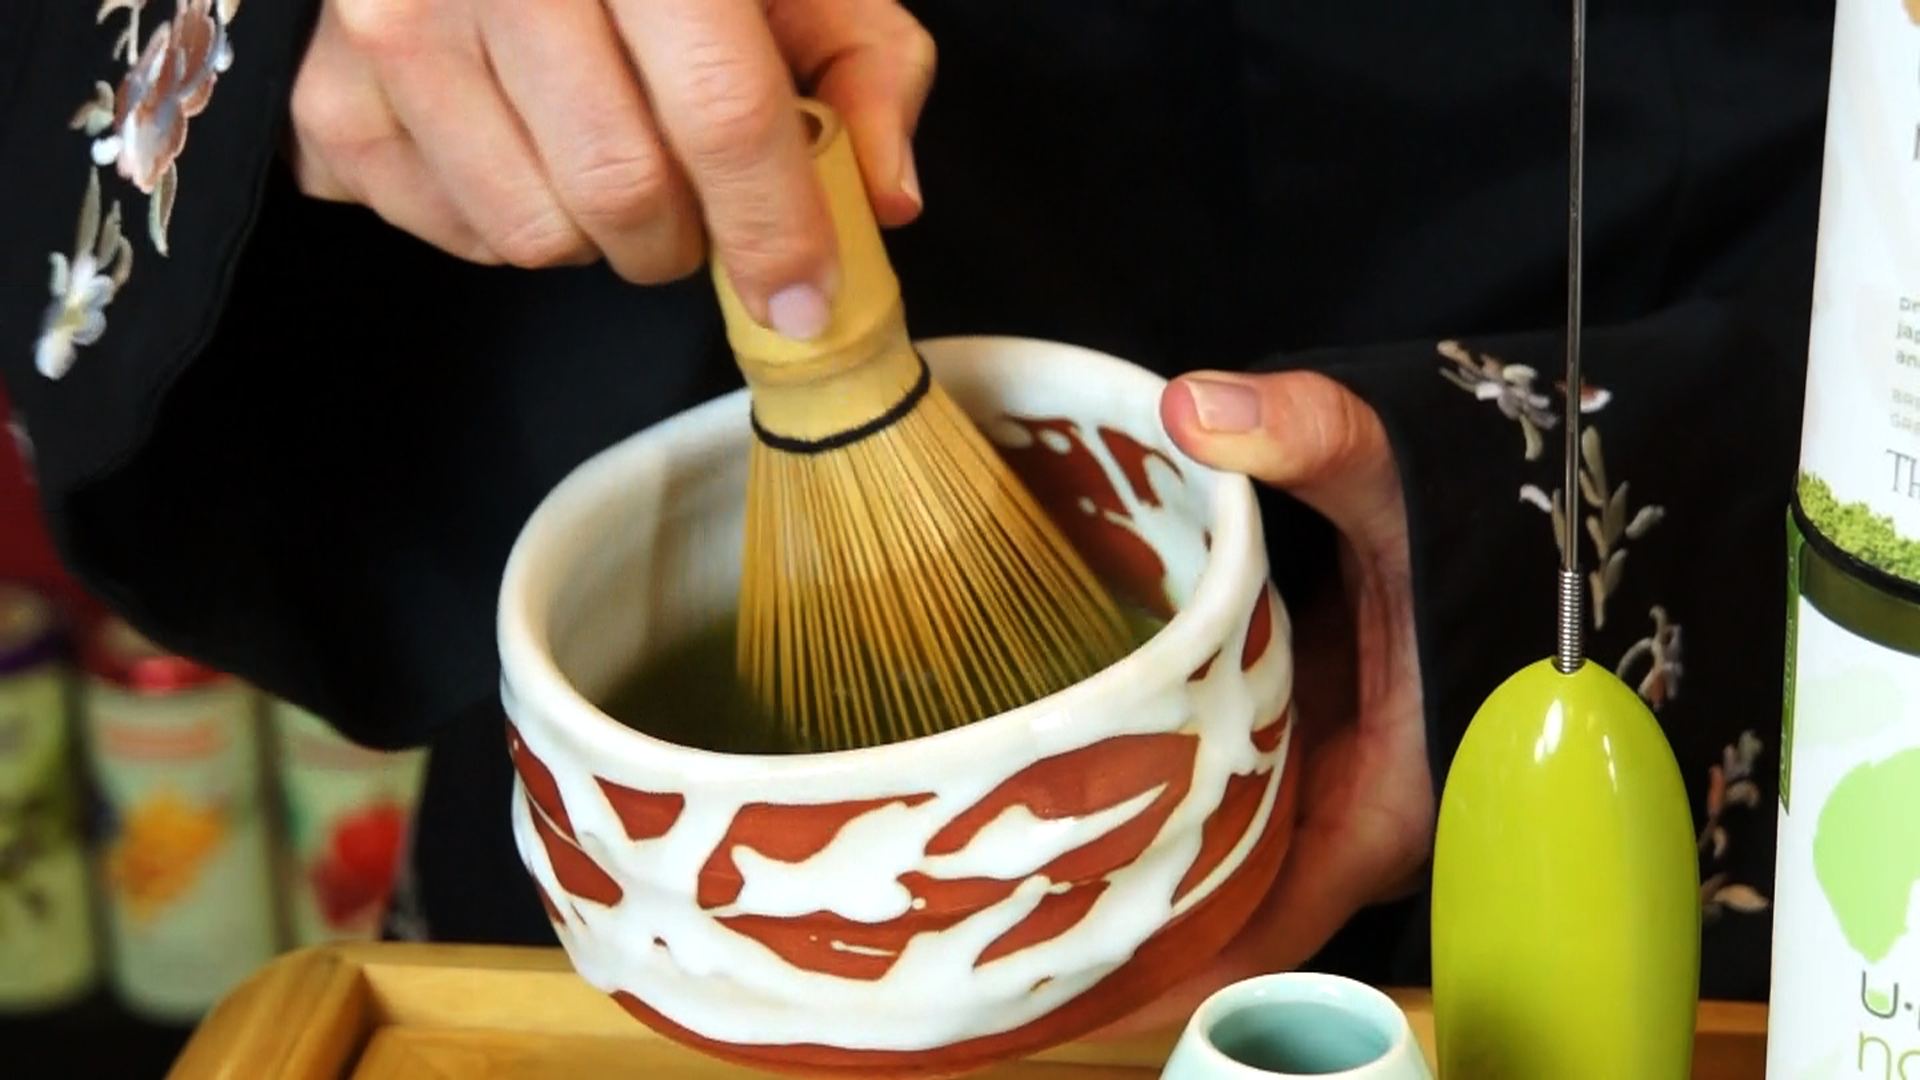 hwo to make matcha instructional video production